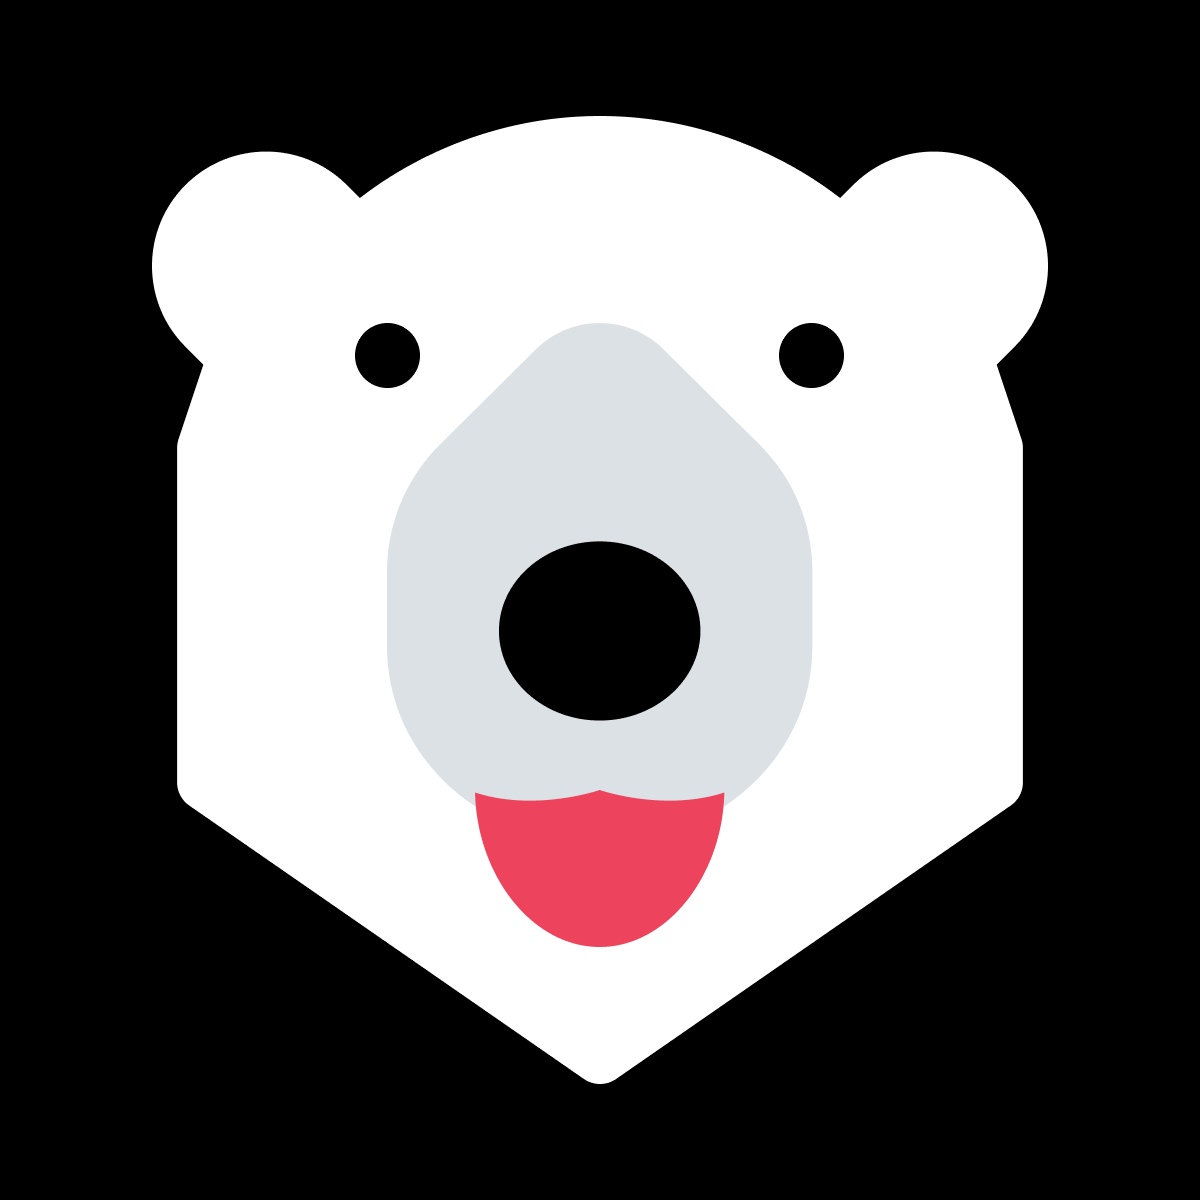 Shopify Trust Badge app by Conversion bear